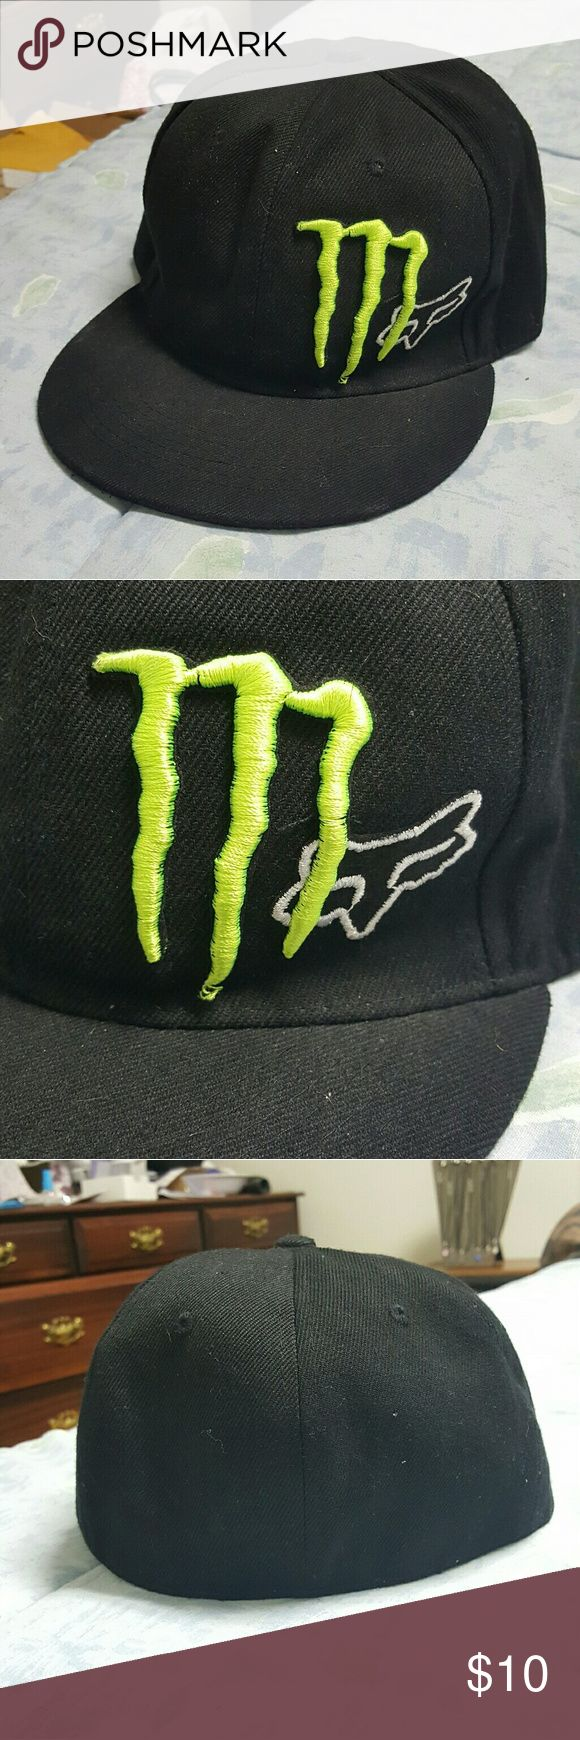 Mens 6 3/4 Monster Energy Fox Racing baseball cap Mens size 6 3/4 Monster Energy Fox Racing baseball cap.  Black with green and white logos. I dont remember ever wearing it but it has no tags. Like new condition. Fox Racing Other